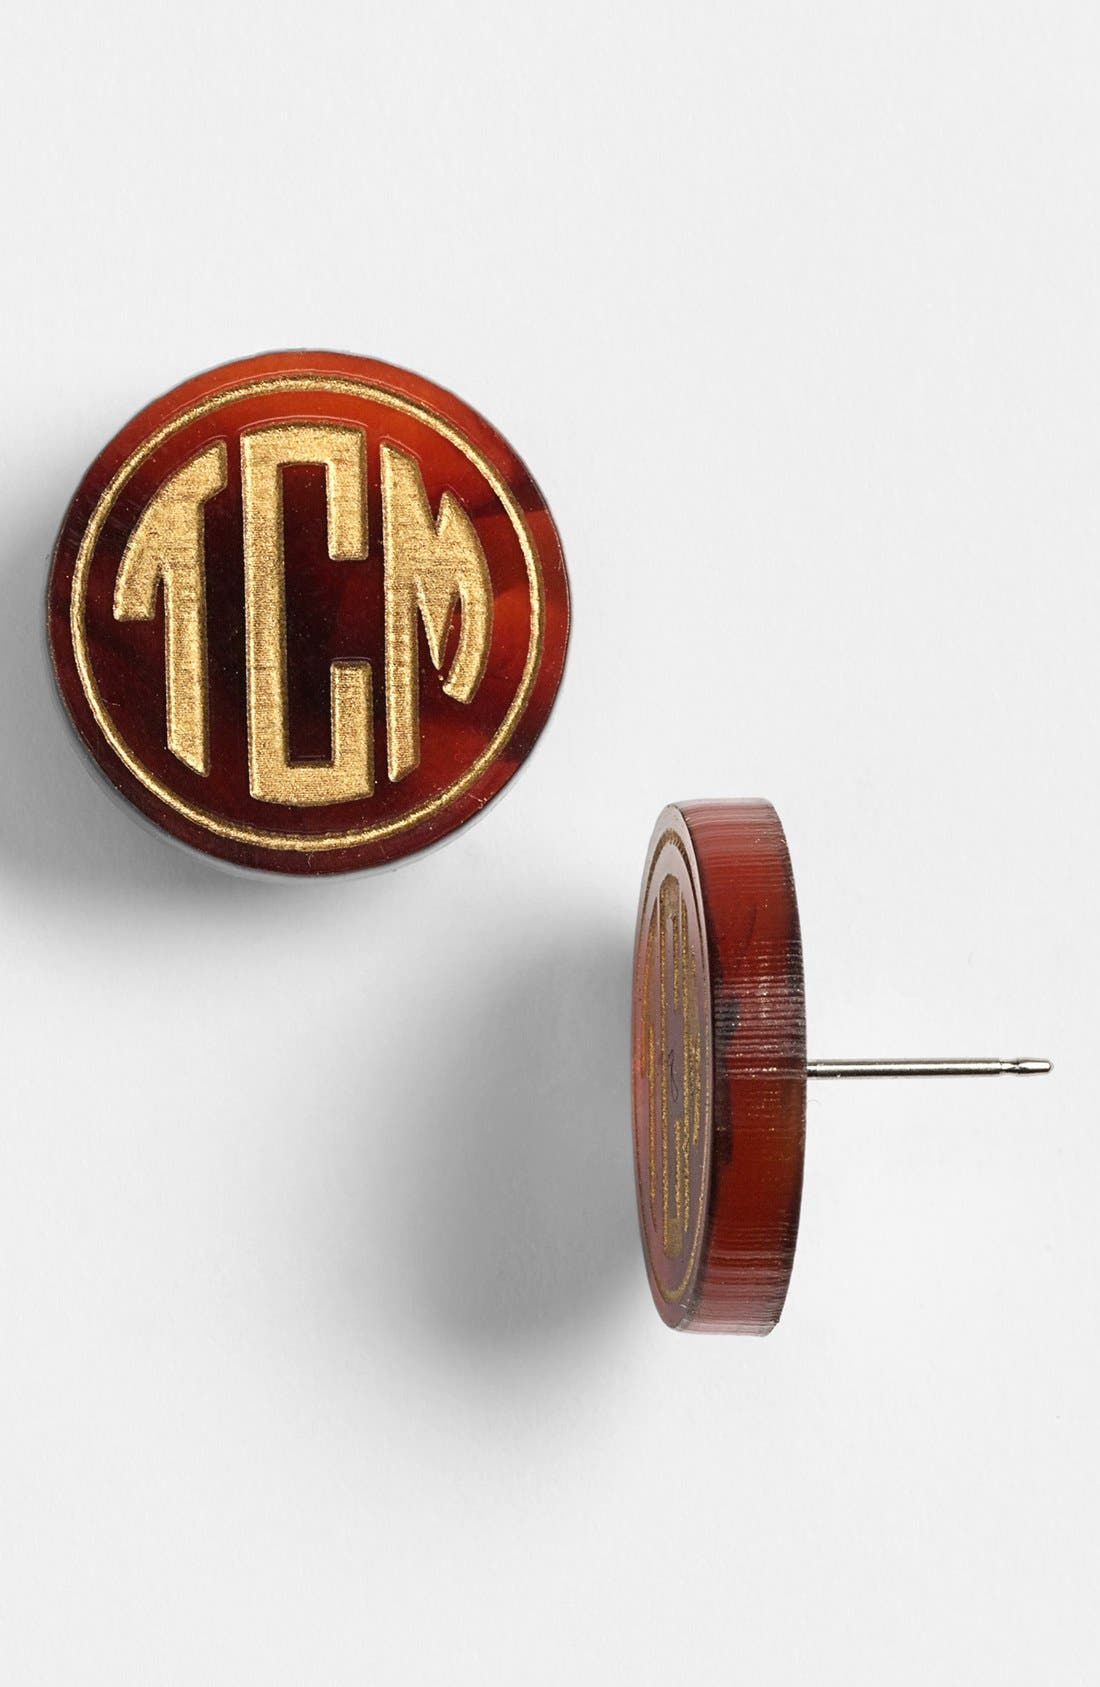 'Chelsea' Medium Personalized Monogram Stud Earrings,                             Main thumbnail 1, color,                             Tortoise/ Gold